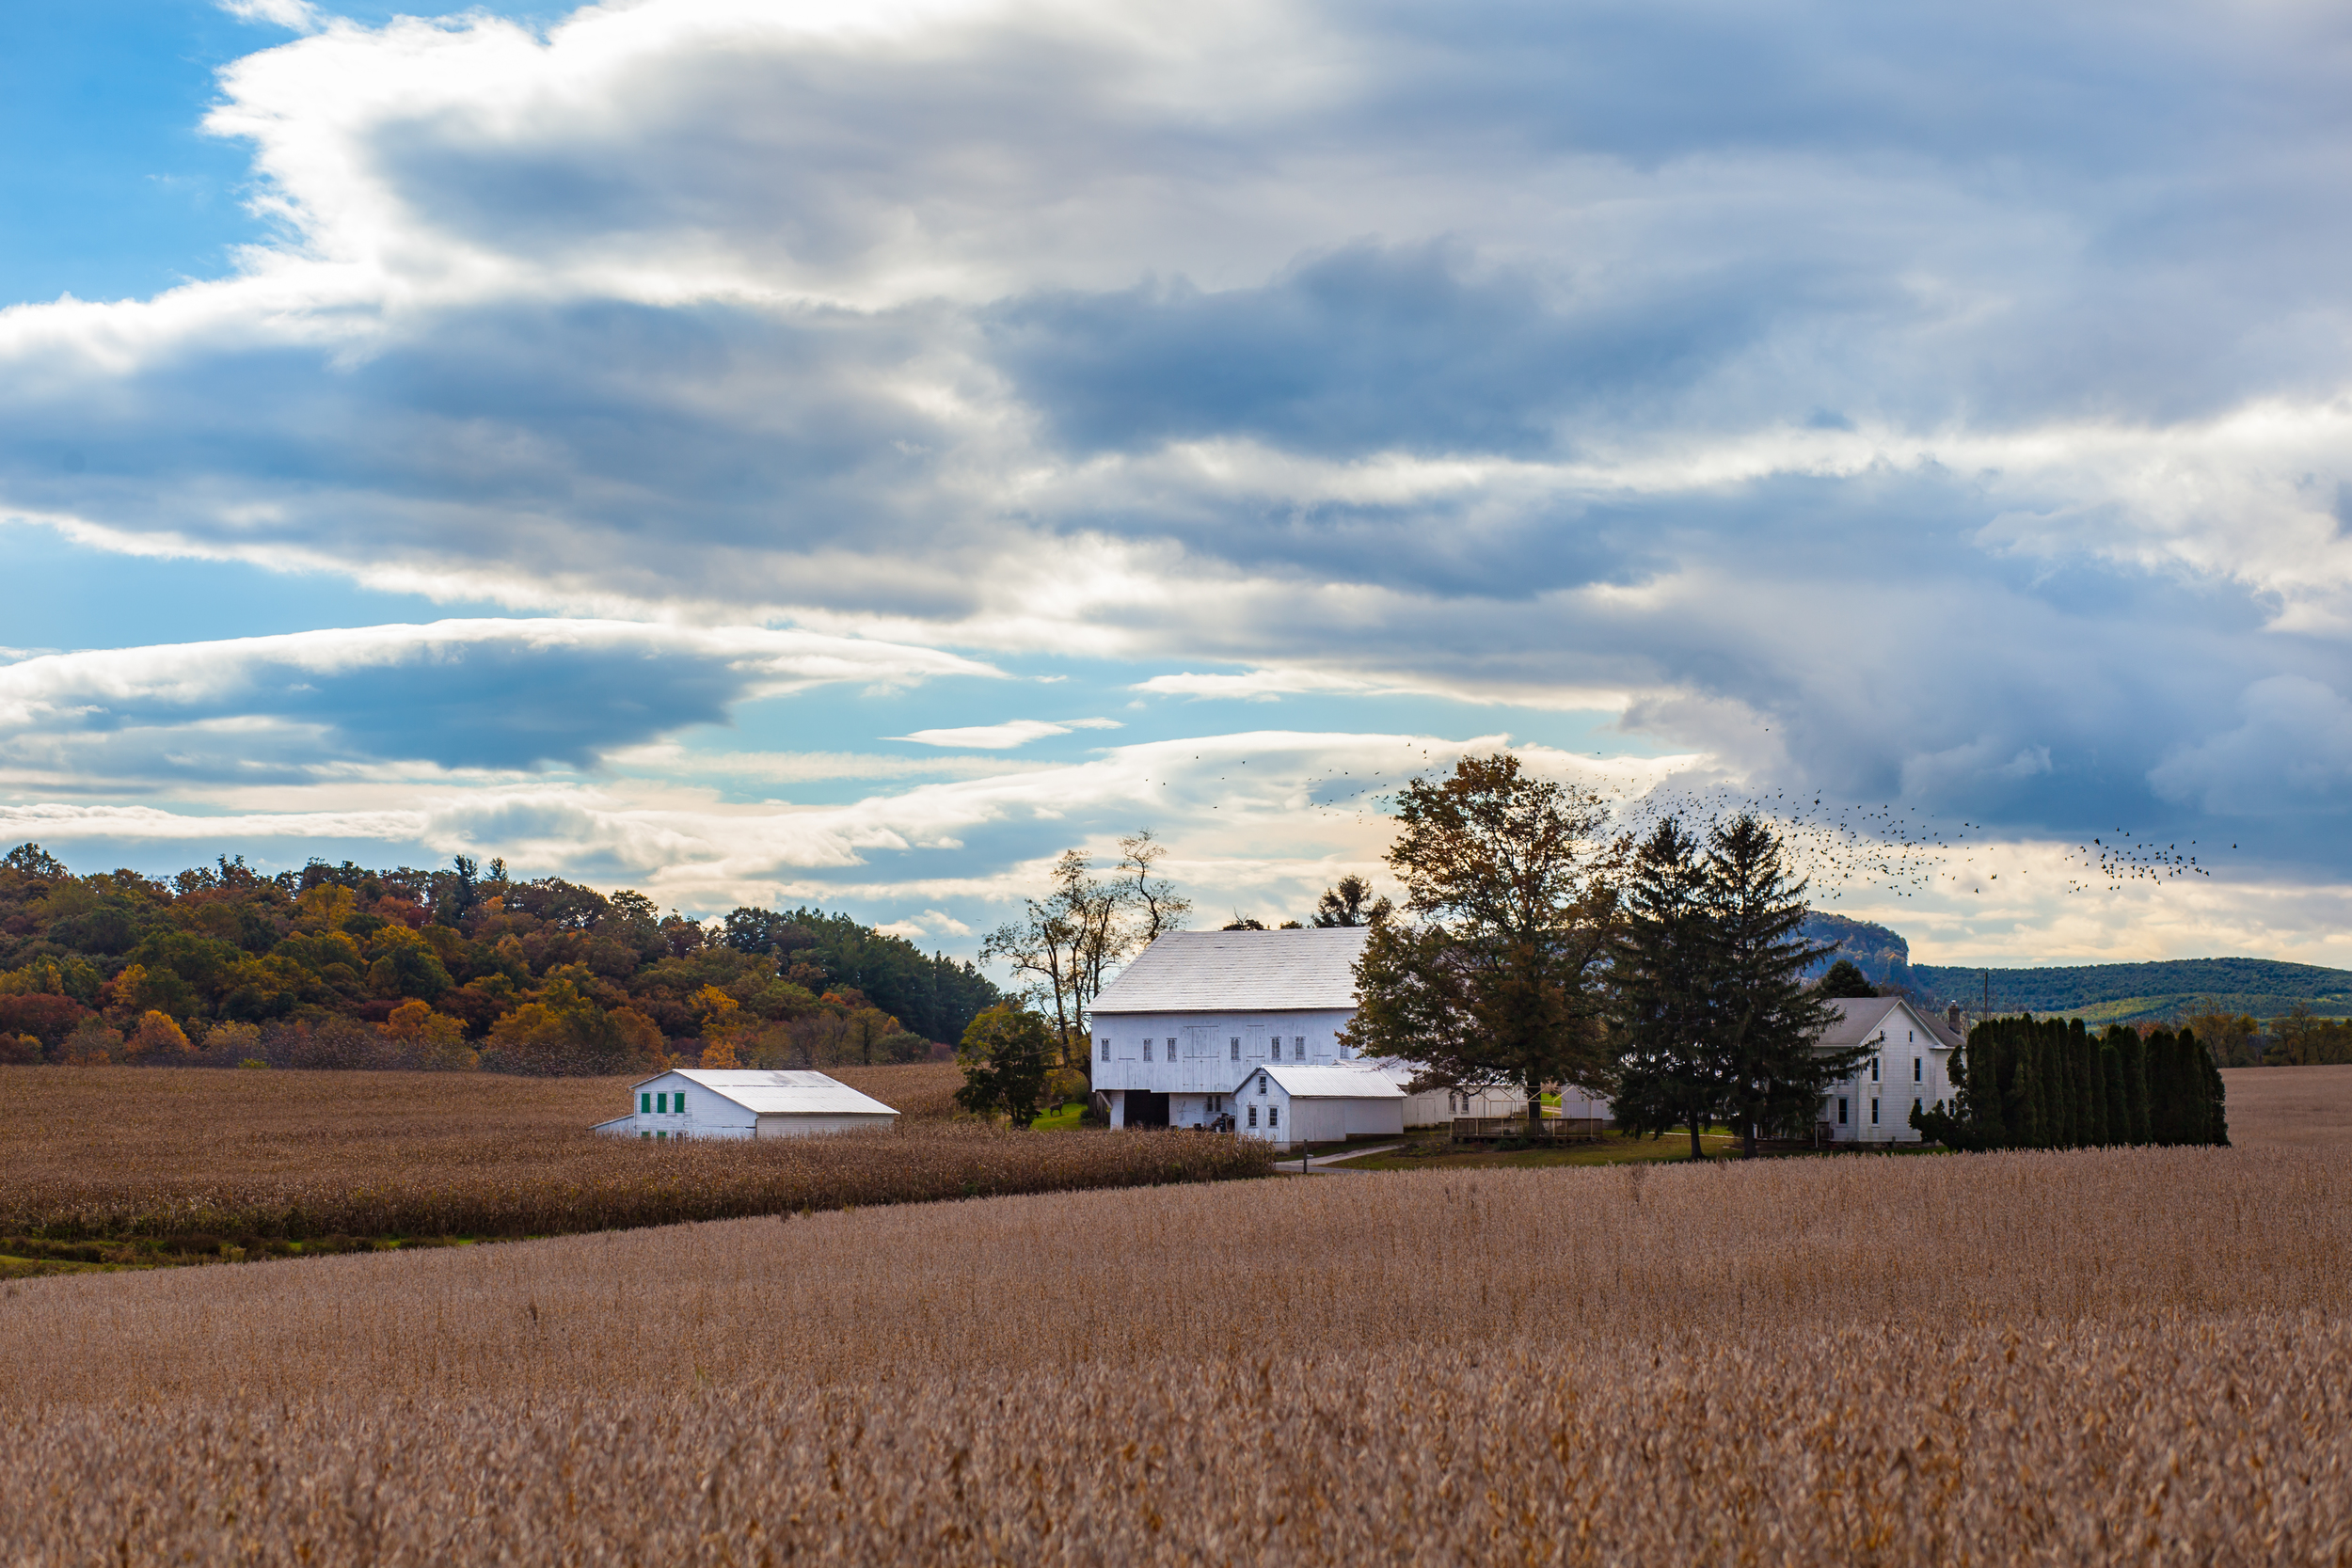 Bushey School Road | York Springs, PA |© 2016 Christy Hydeck (Click image to view larger + in a new window)